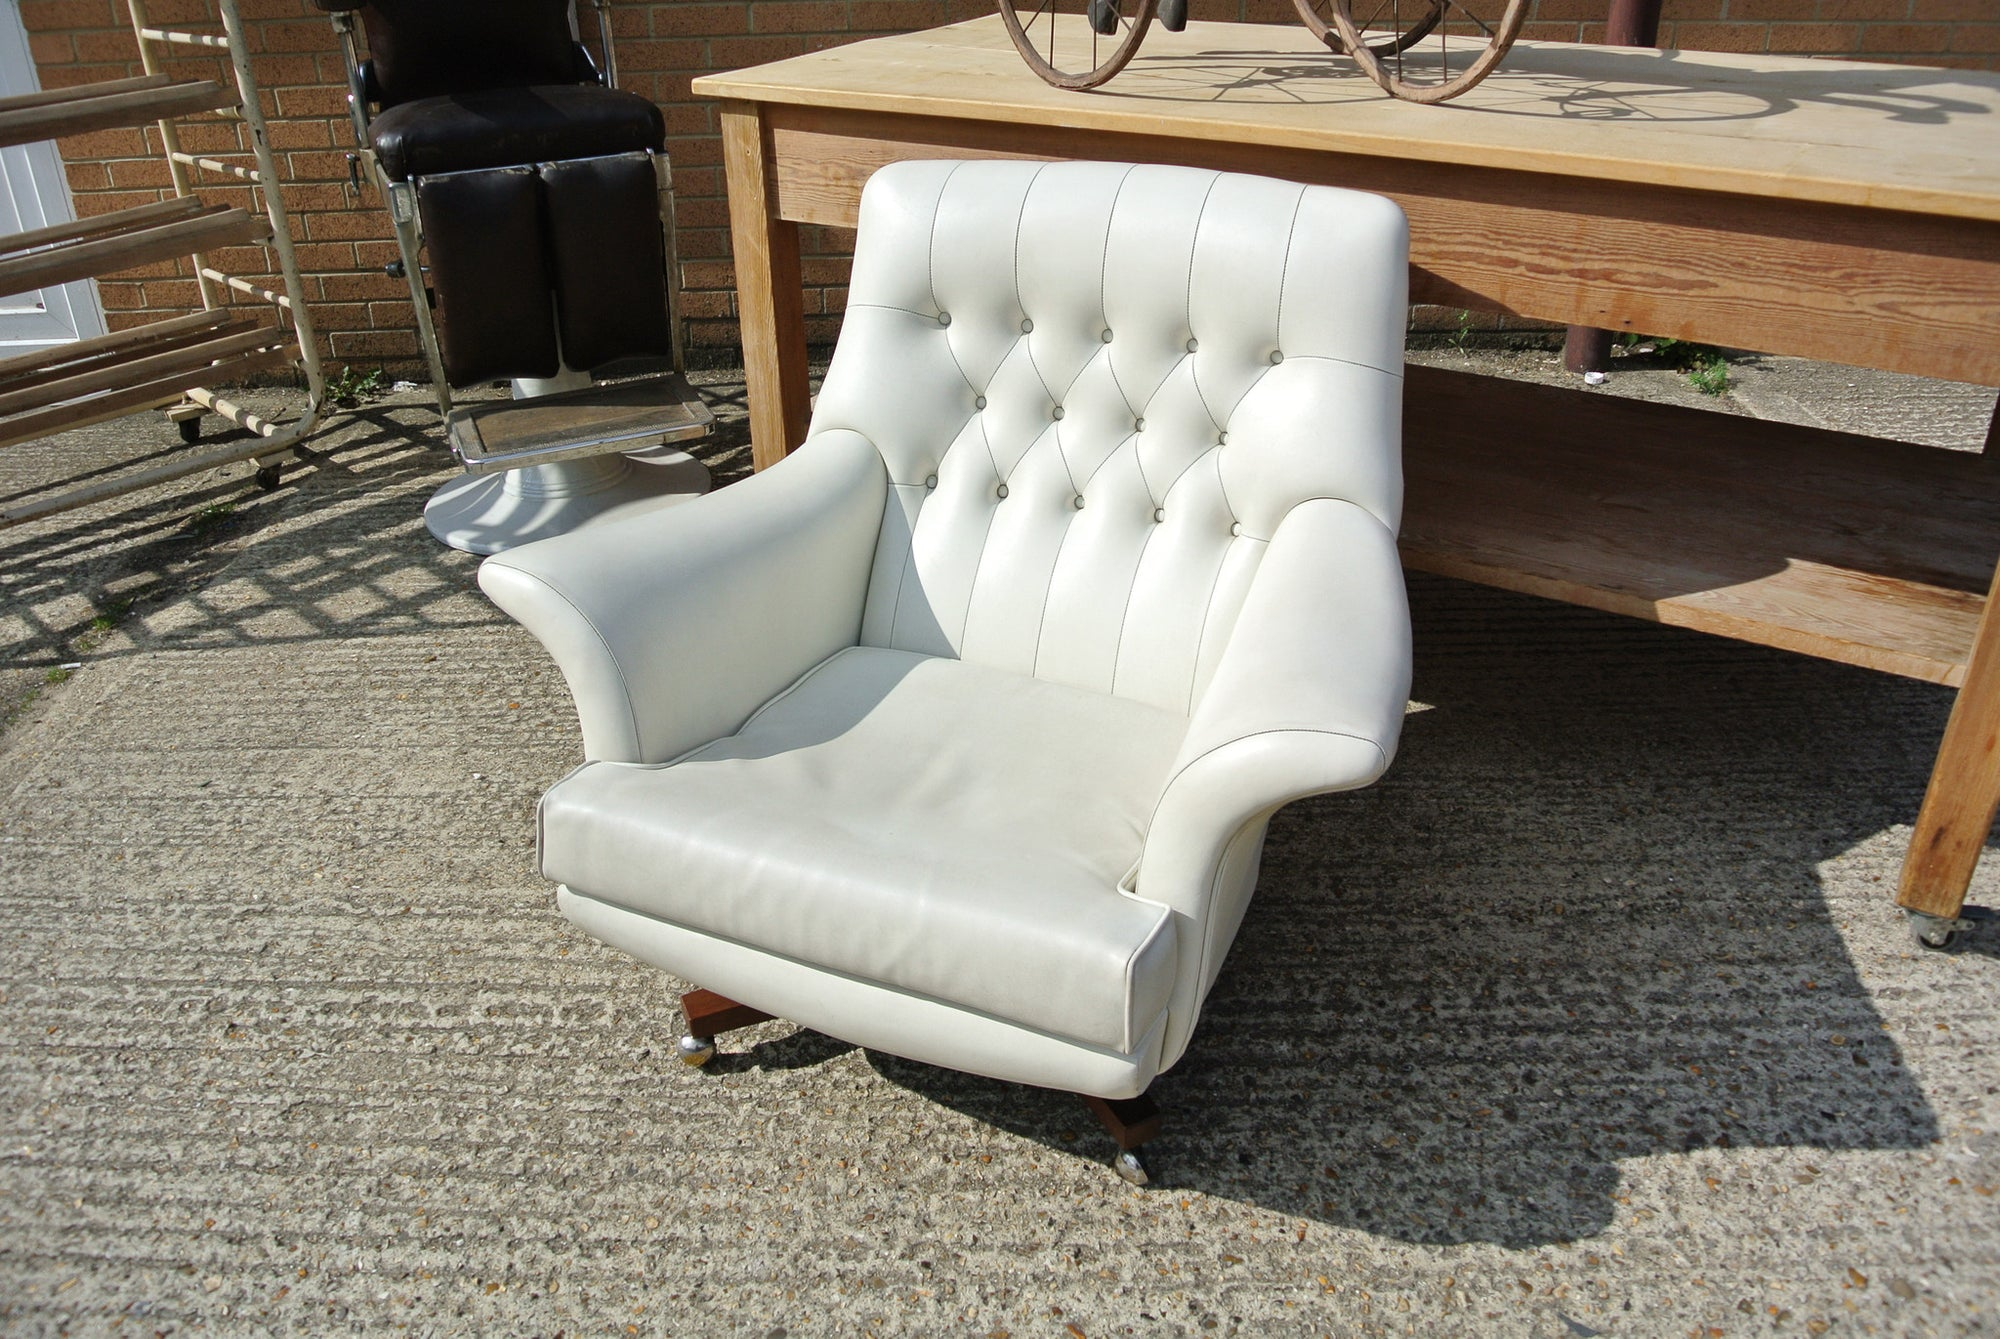 1960s G-Plan white leatherette revolving chair